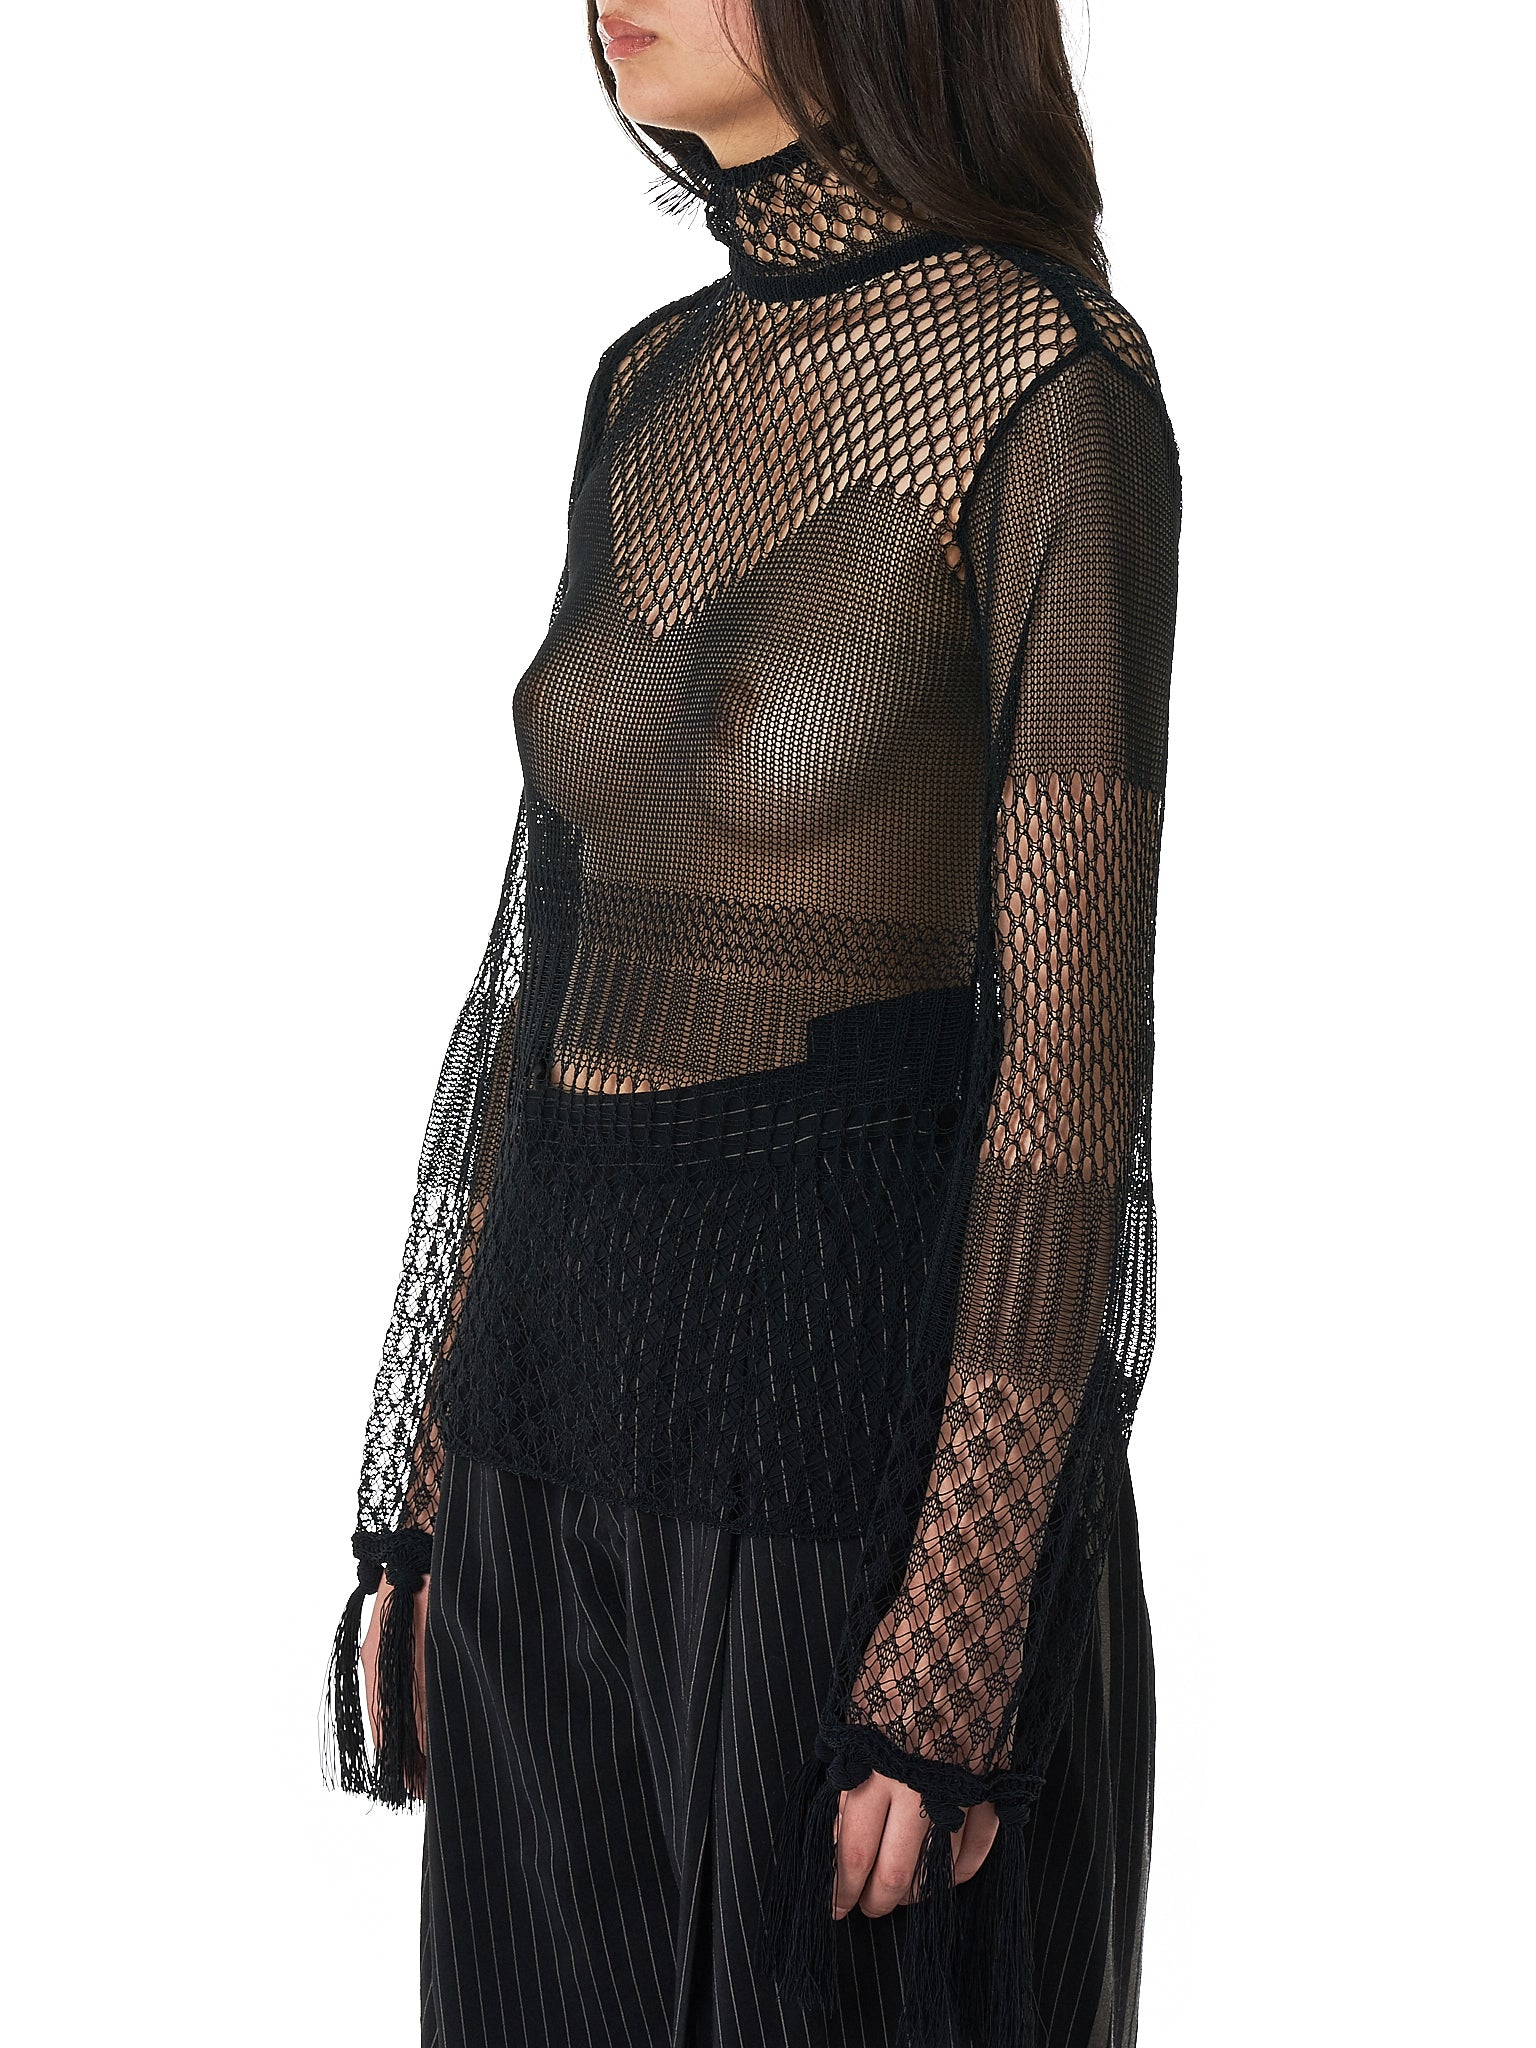 Mame Kurogouchi Fishnet Top - Hlorenzo Side